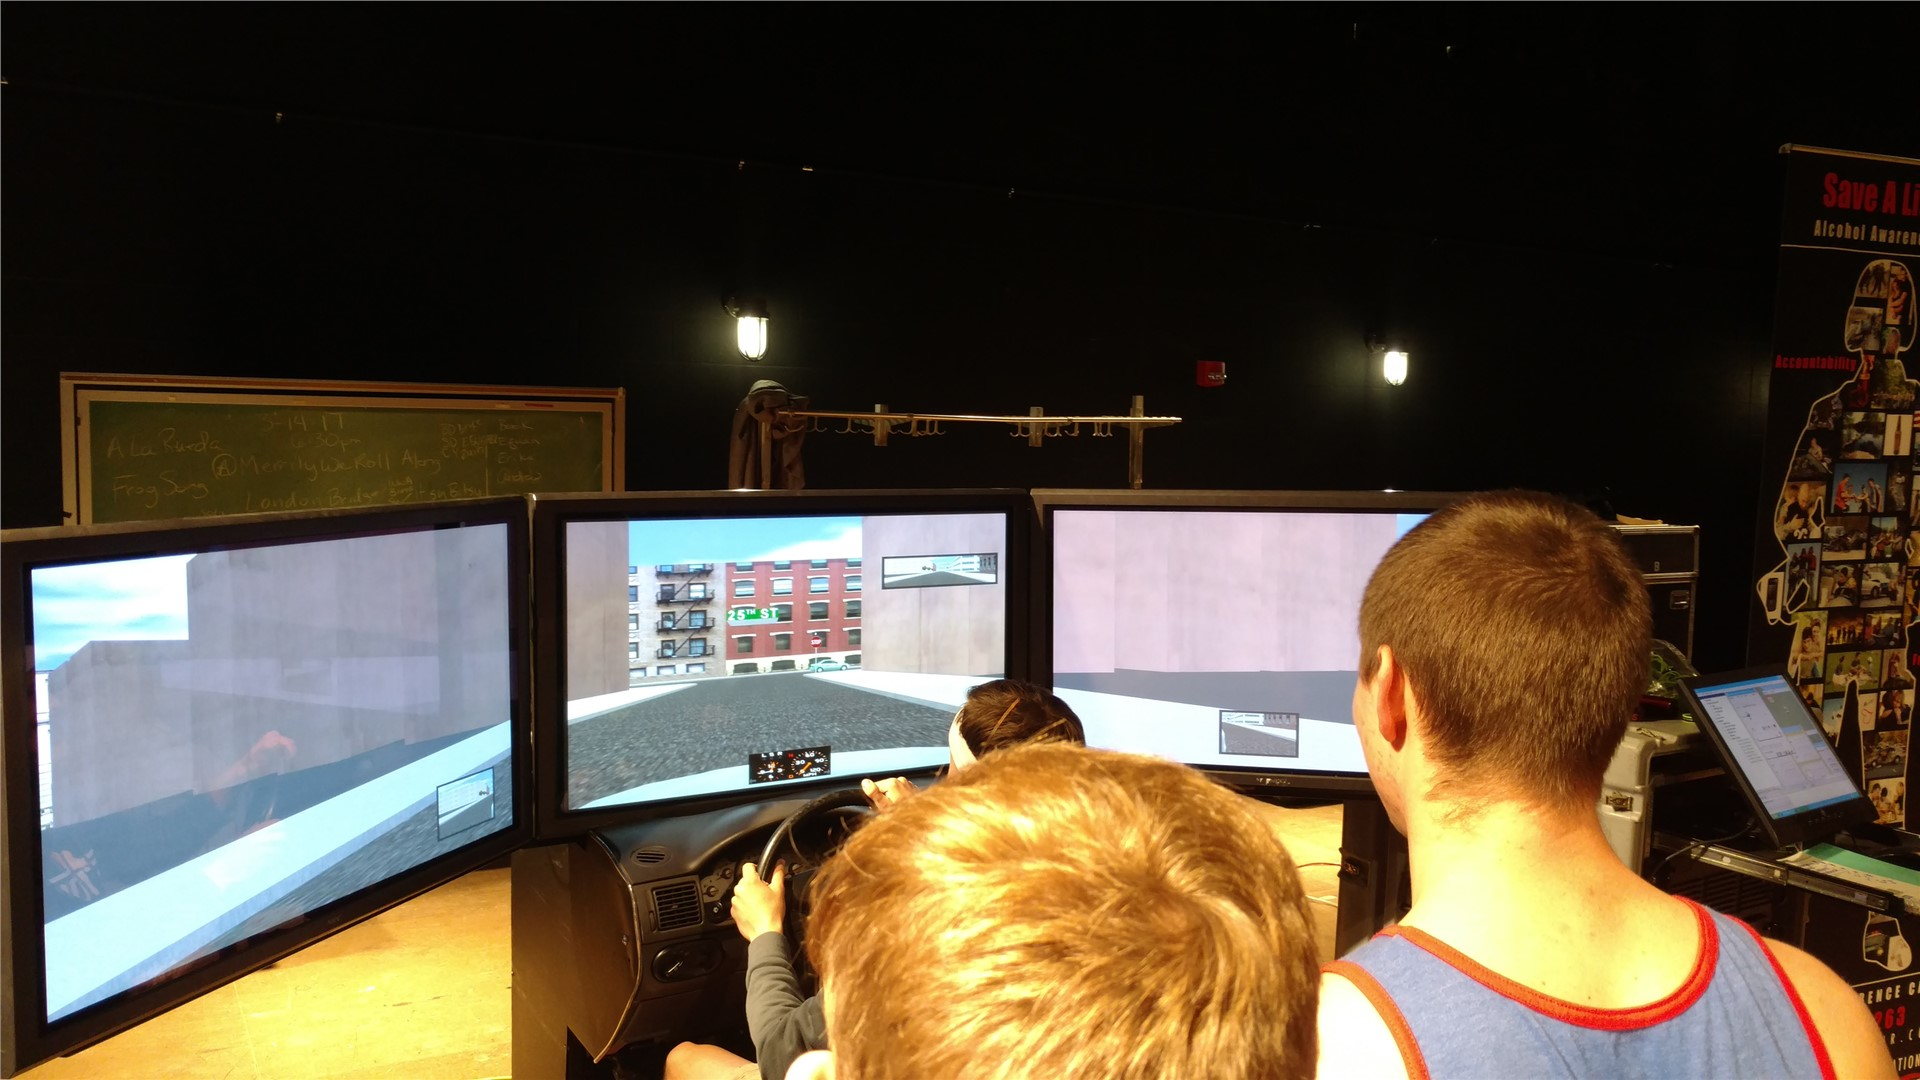 Student at console of virtual driving simulator as others look on.